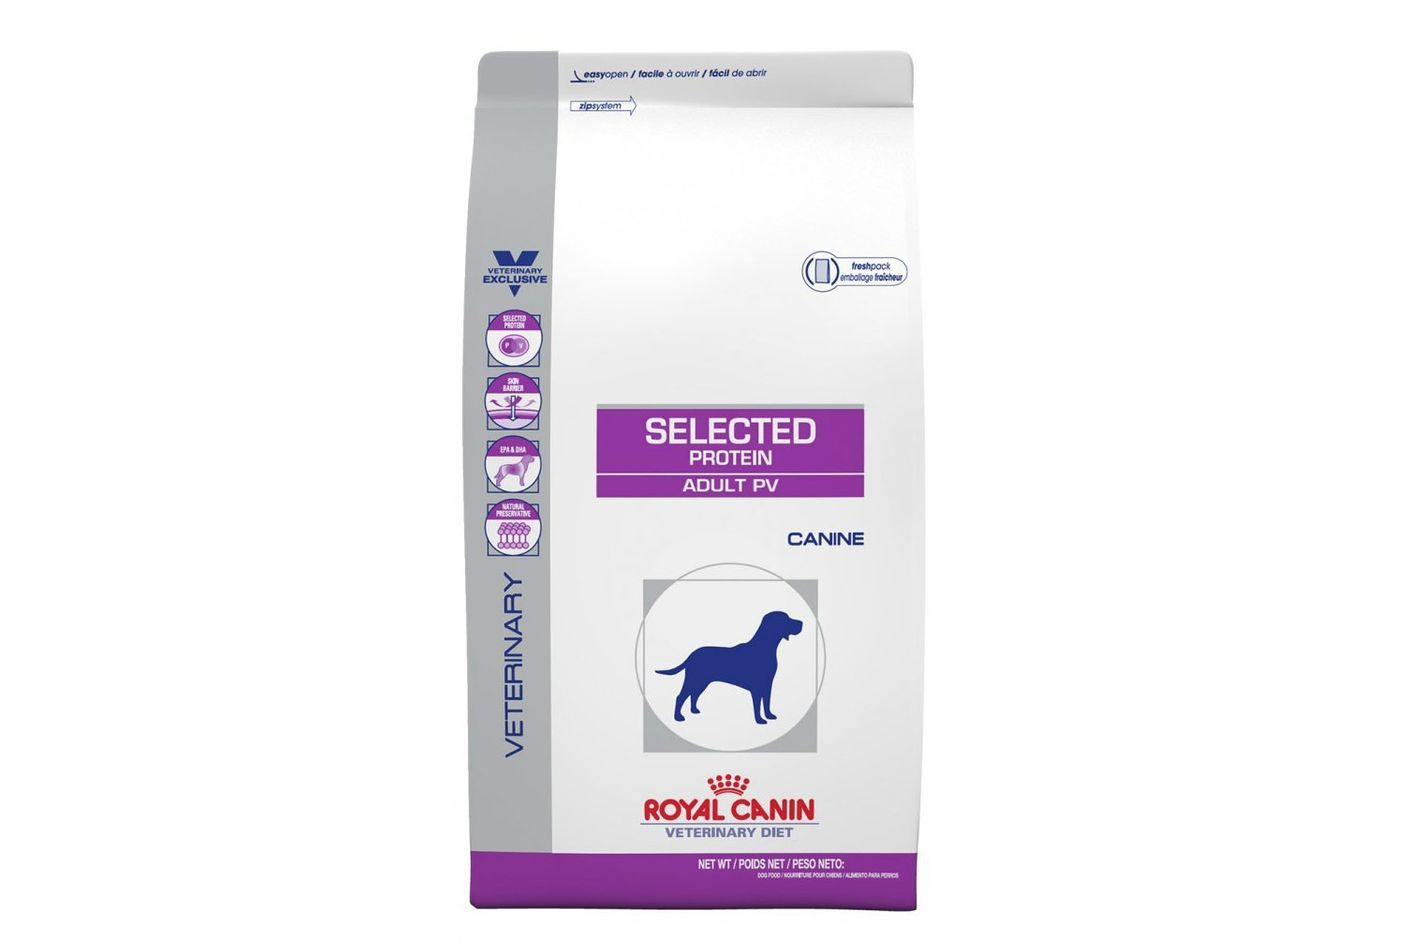 Royal Canin Selected Protein Adult PV Dog Food